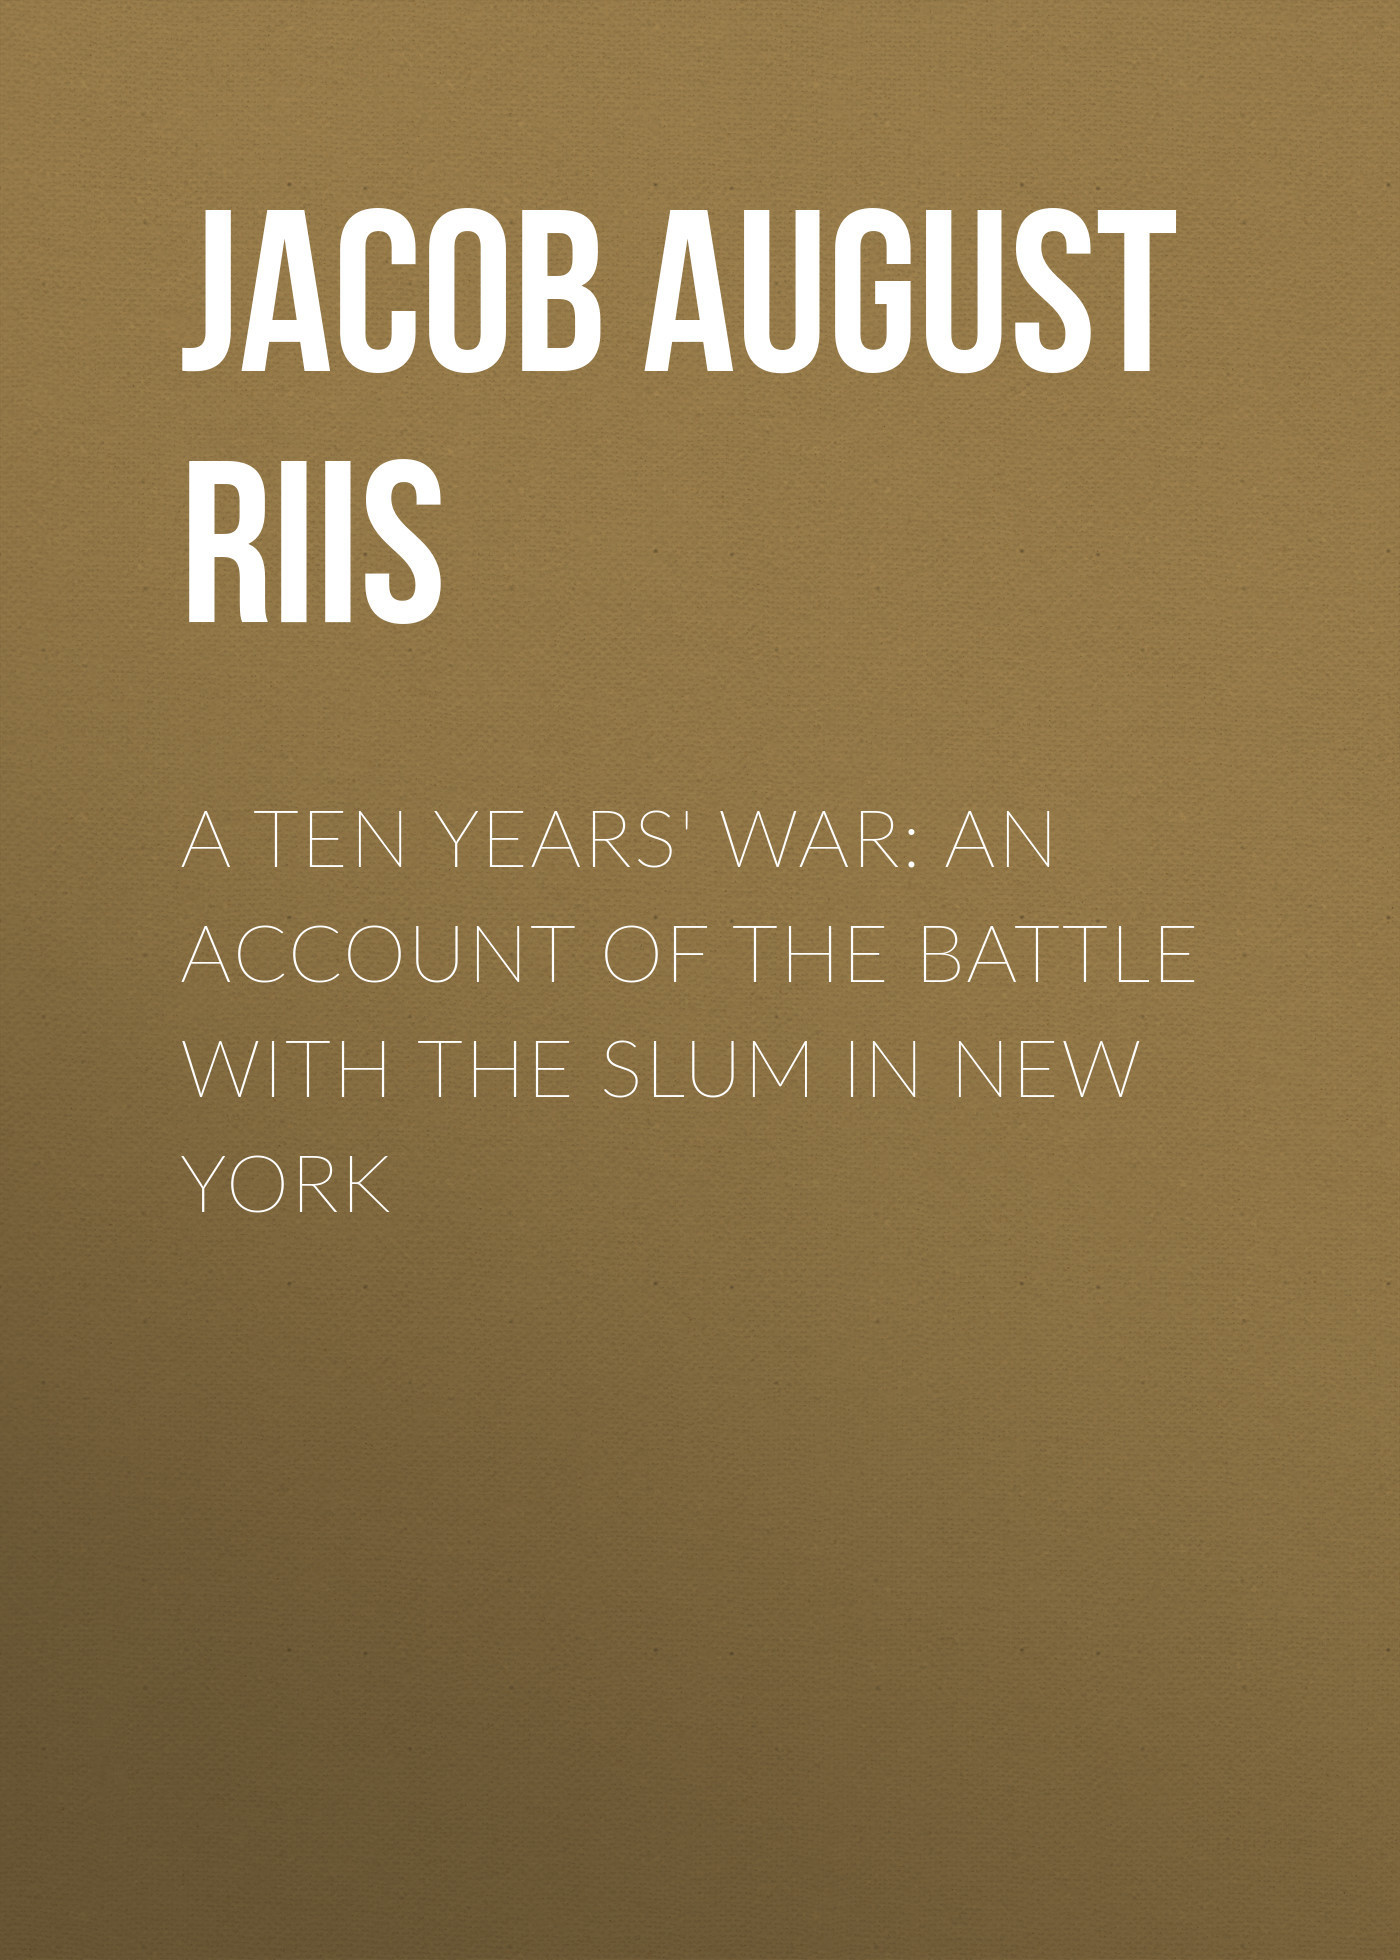 Jacob August Riis A Ten Years' War: An Account of the Battle with the Slum in New York new lepin 05034 2503pcs star the shuttle model building kit blocks bricks compatible children war toy gifts with 10212